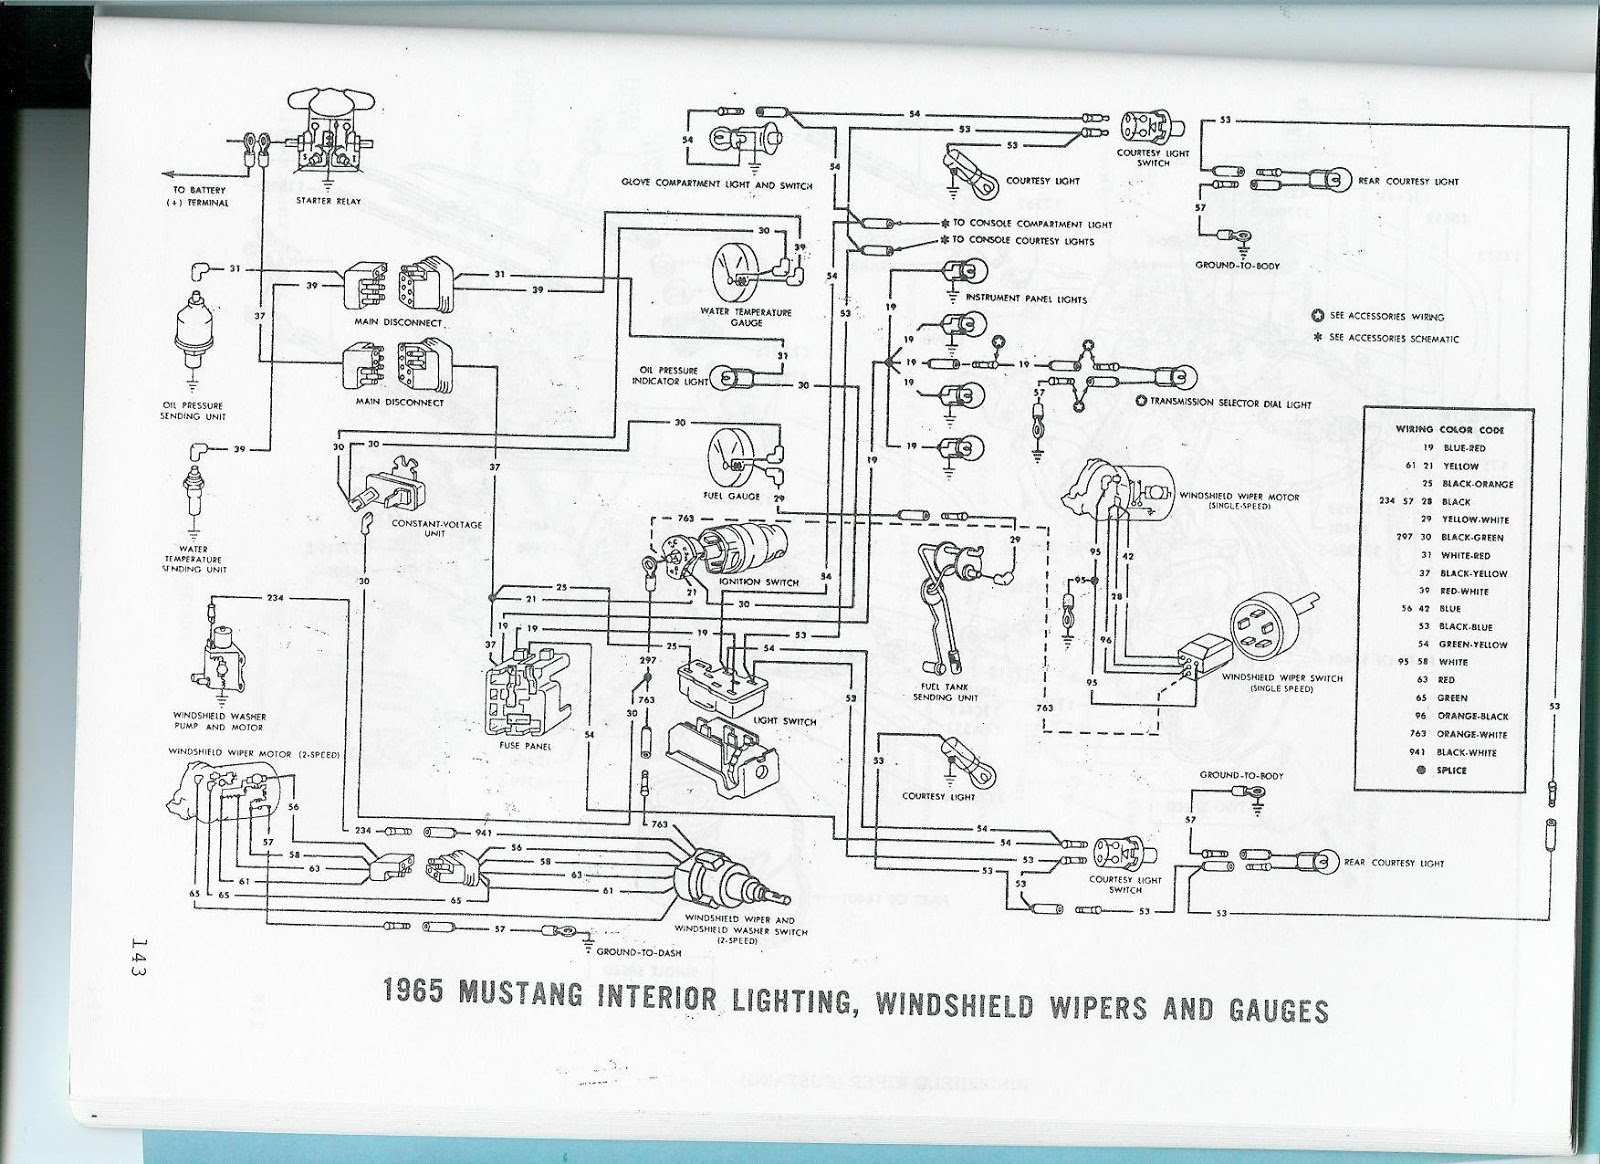 1970 Mustang Fuse Box Wiring Library Chevy Truck Fuel Tank Selector Printable Diagram The Care And Feeding Of Ponies 1965 Diagrams